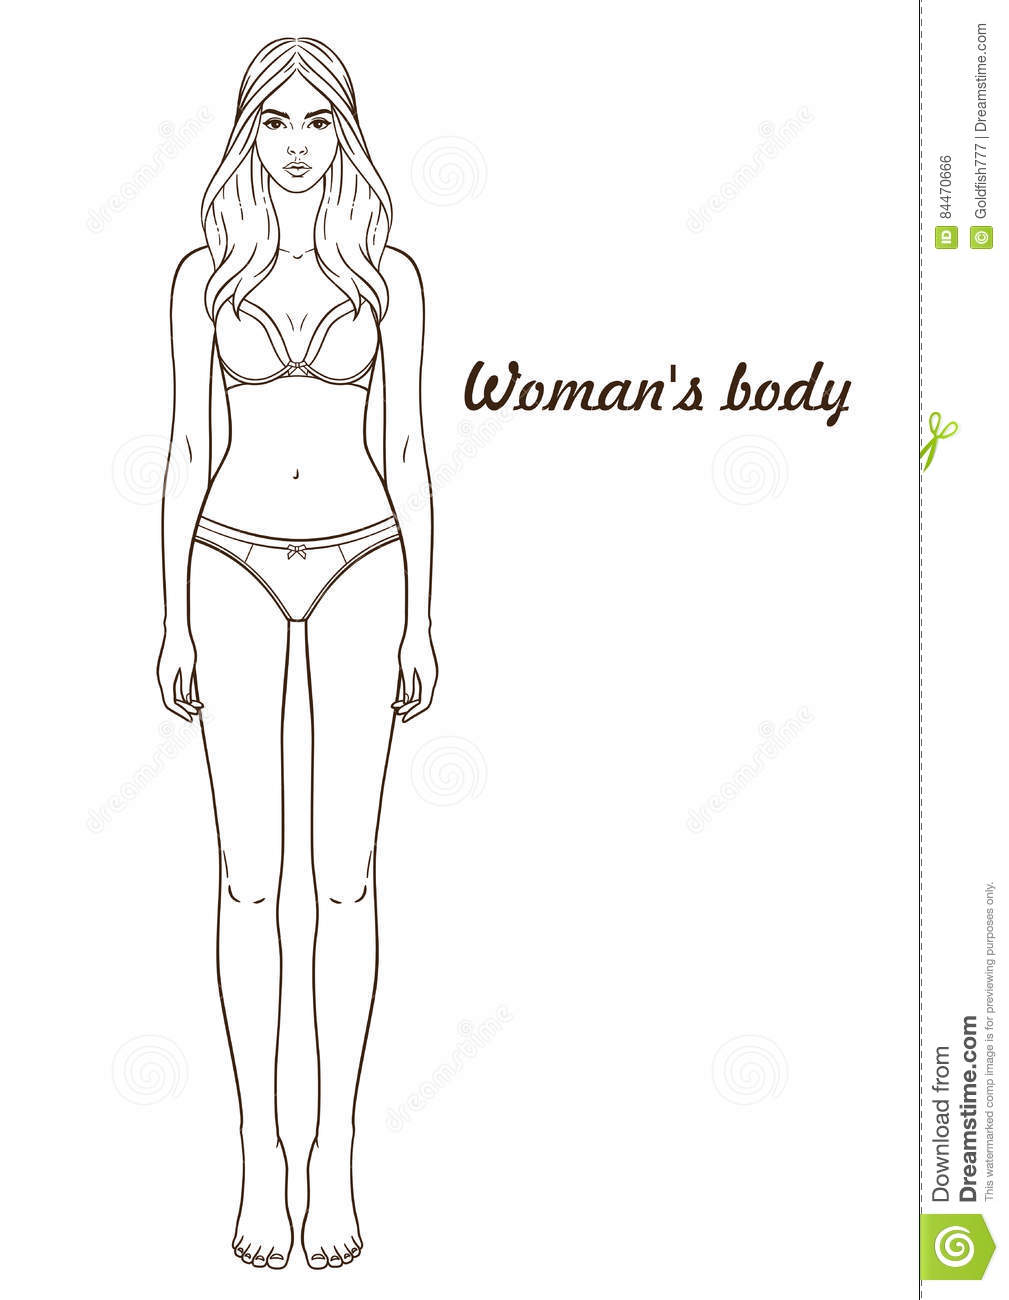 vector illustration of womans body stock vector image With paper doll template woman